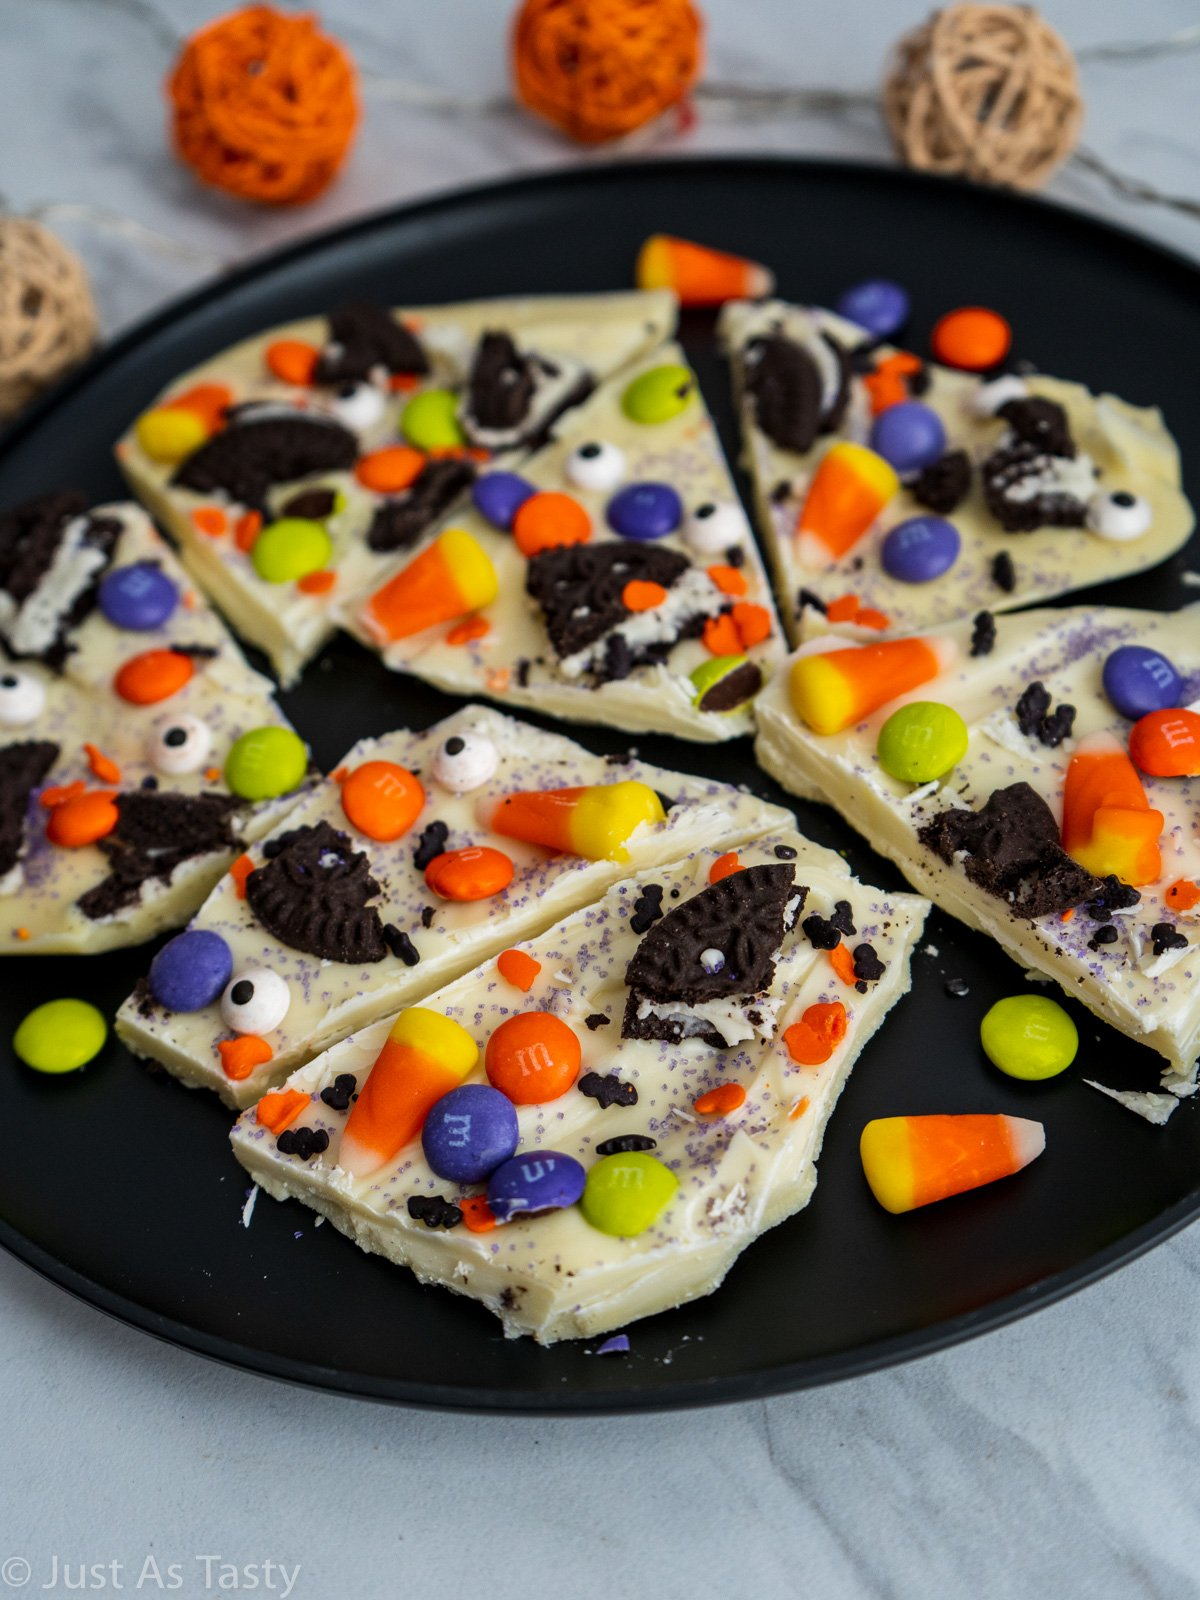 White chocolate bark topped with candy corn, Halloween sprinkles, and Oreo pieces on a black plate.